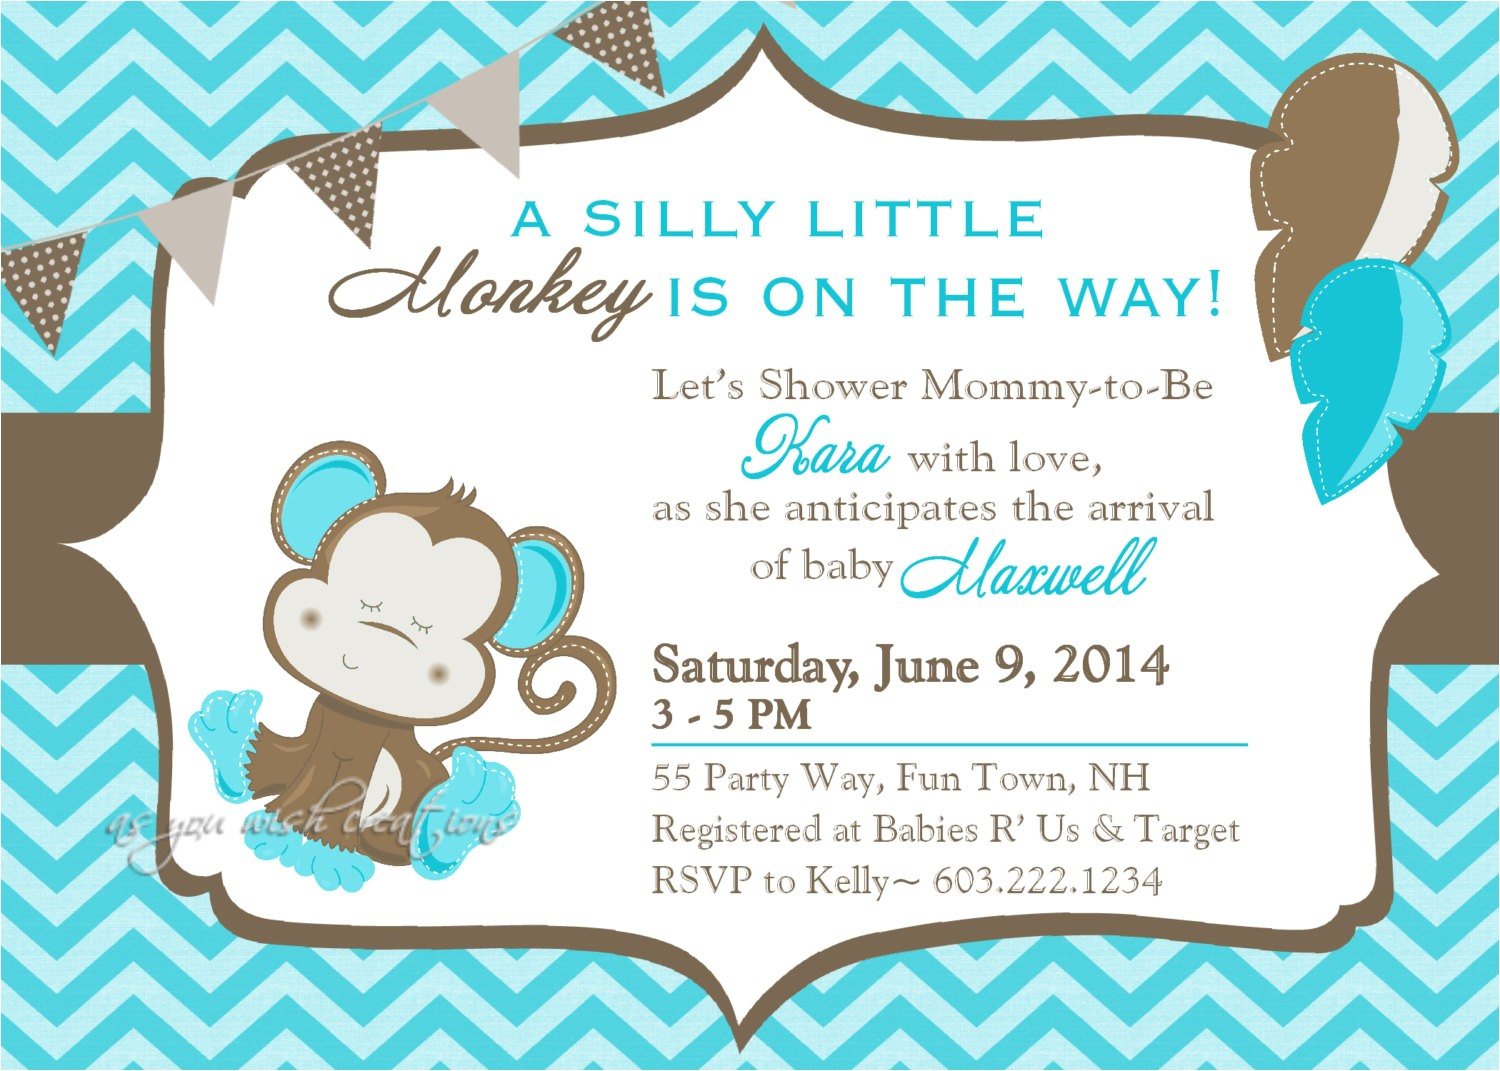 Baby Shower Invites Canada Ideas About Inexpensive Baby Shower Invitations Girl for